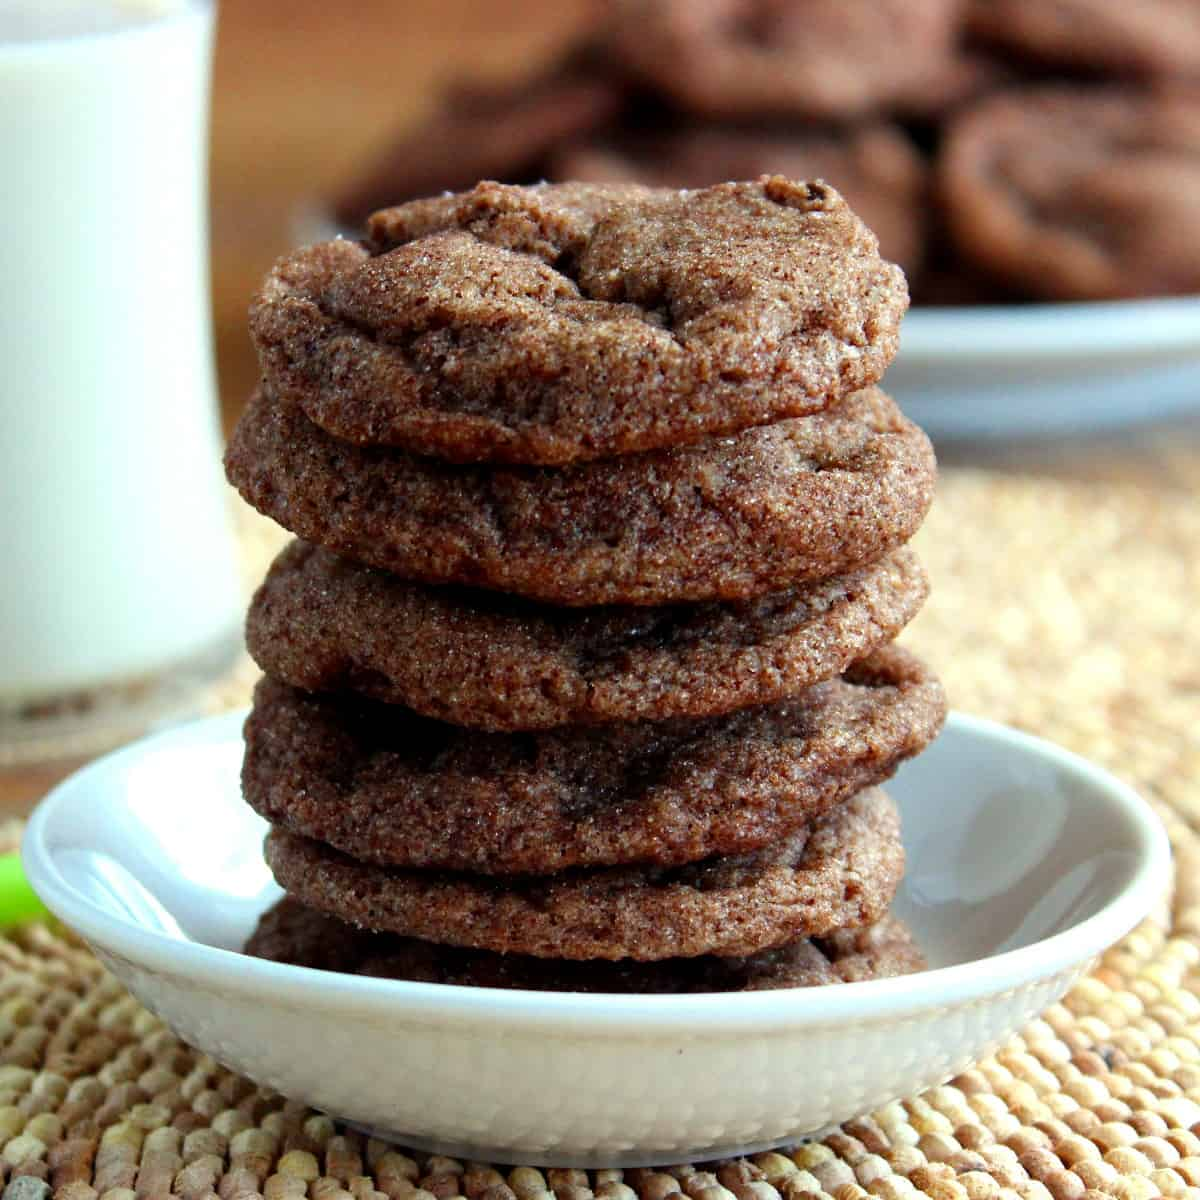 Close-up square photo of a stack of vegan double chocolate chip cookiesin a small white bowl next to a glass of dairy-free milk.